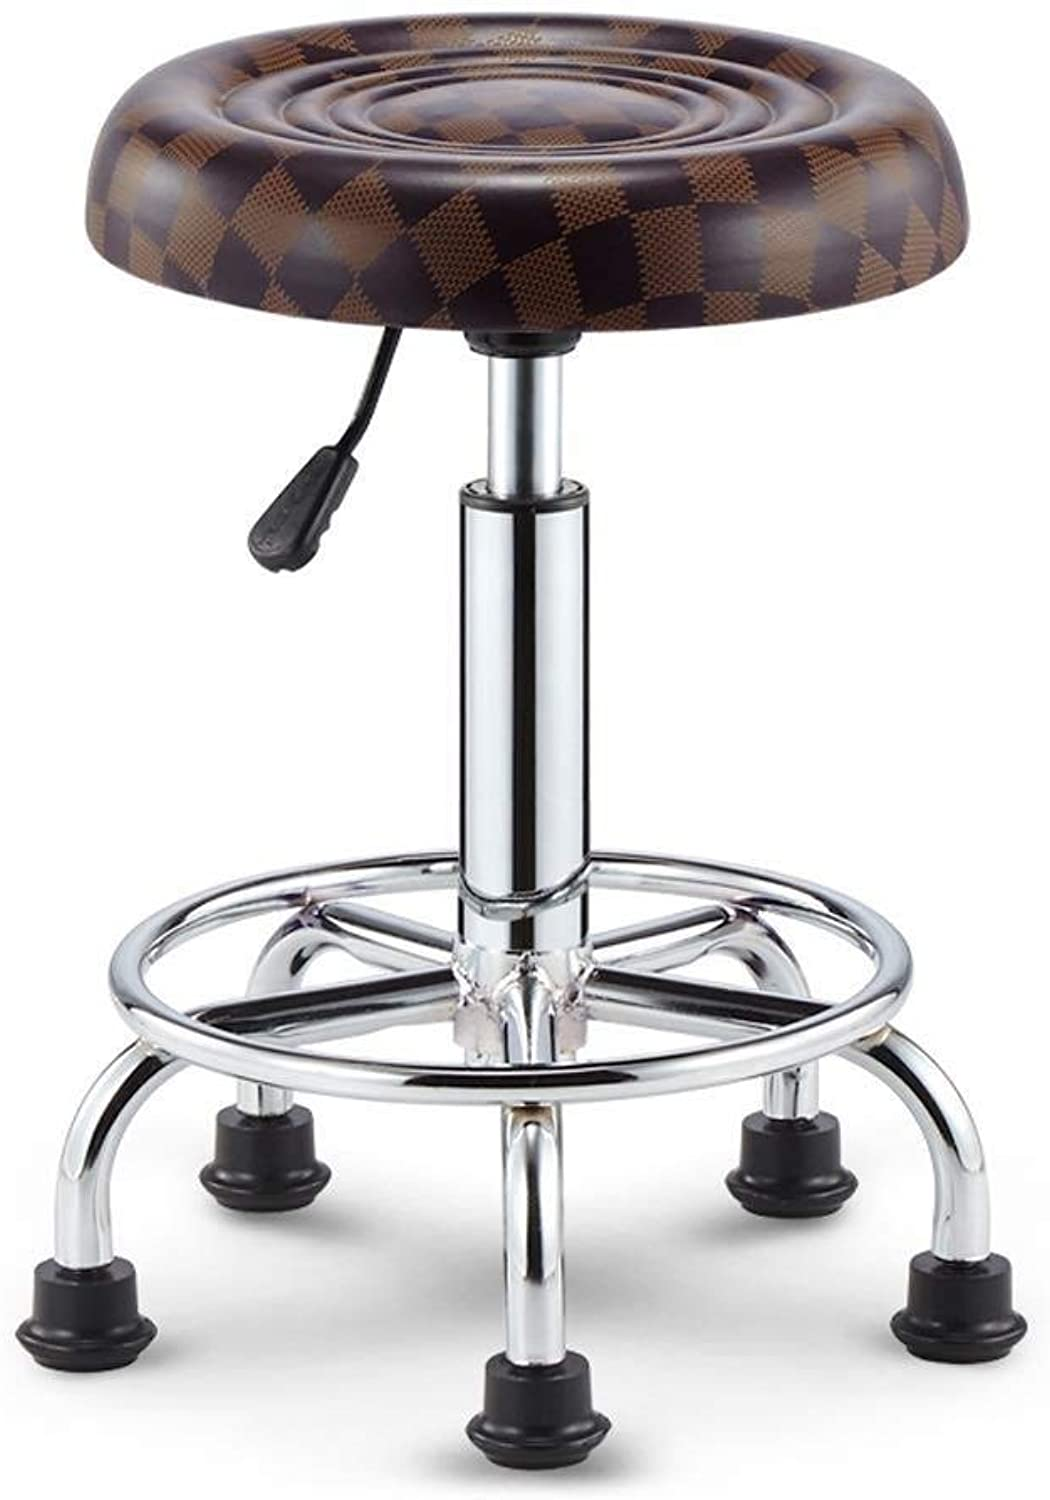 Bar Stool with Adjustable Swivel Threaded Leather Dining Chair, Chrome Five-Legged Chassis Design (Size   Brown)